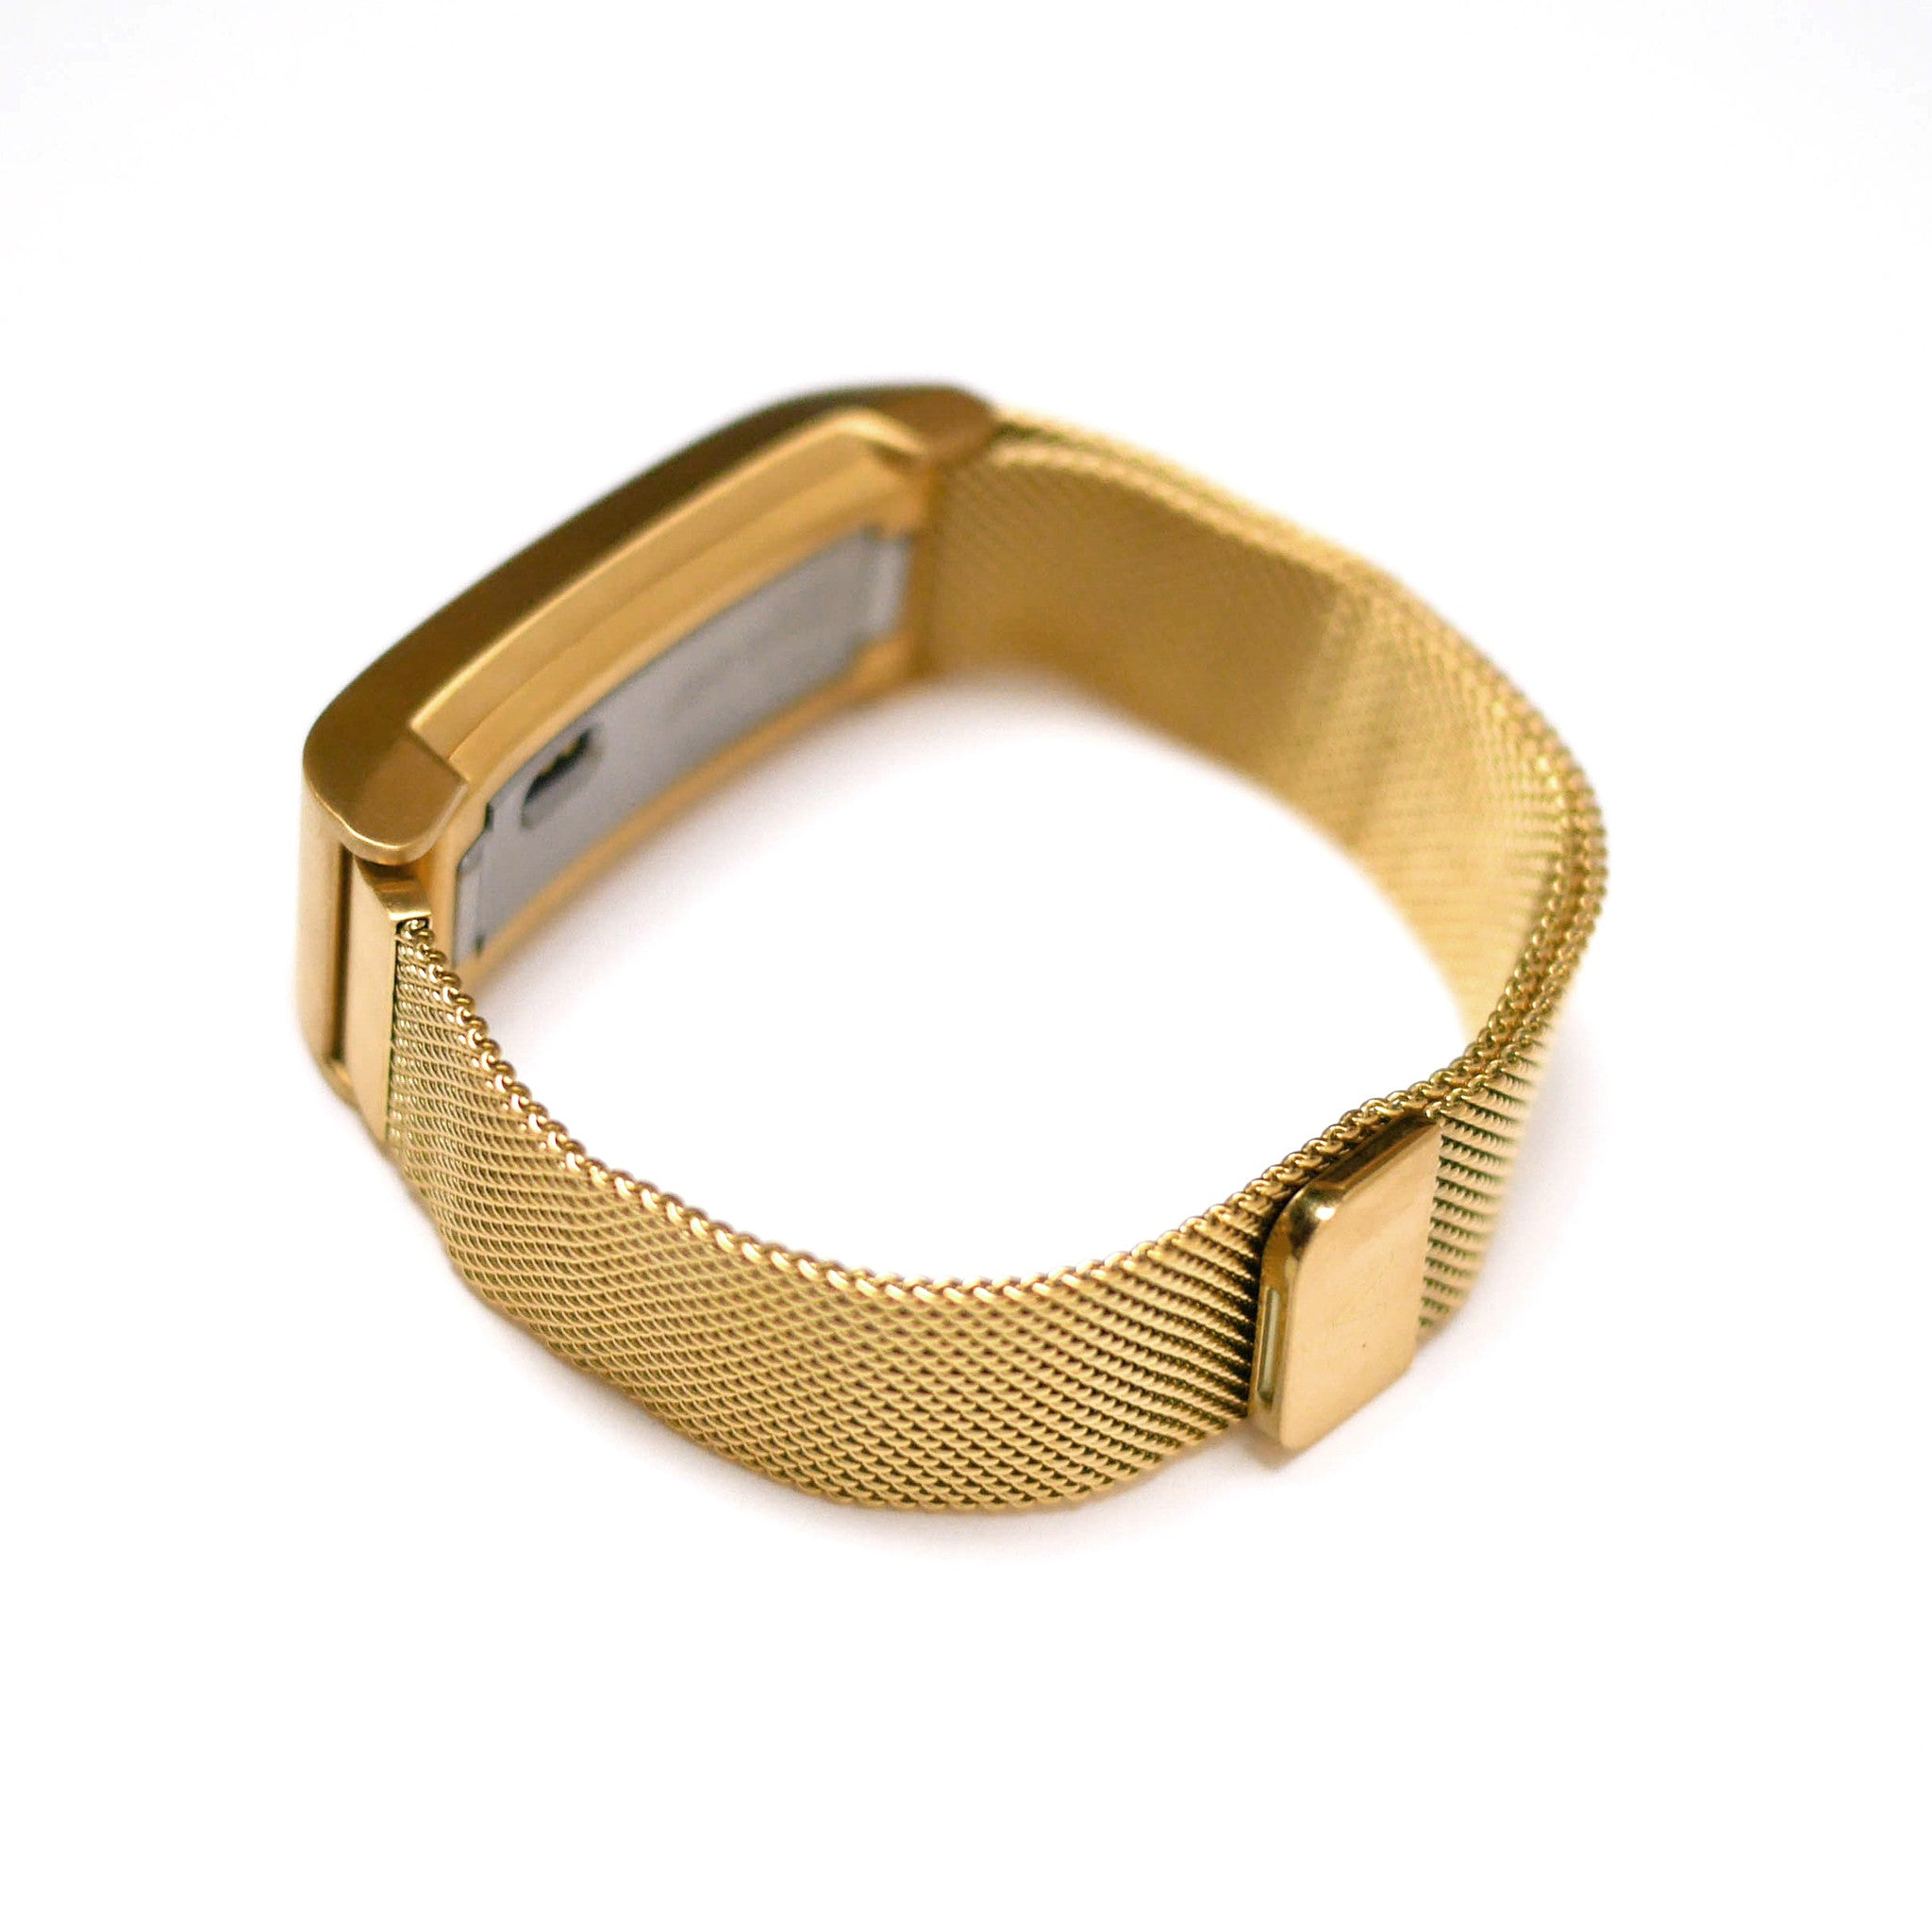 Gold Edition Band For Fitbit Alta Metal Accessory Bracelet Morstep Jewelry Accessories